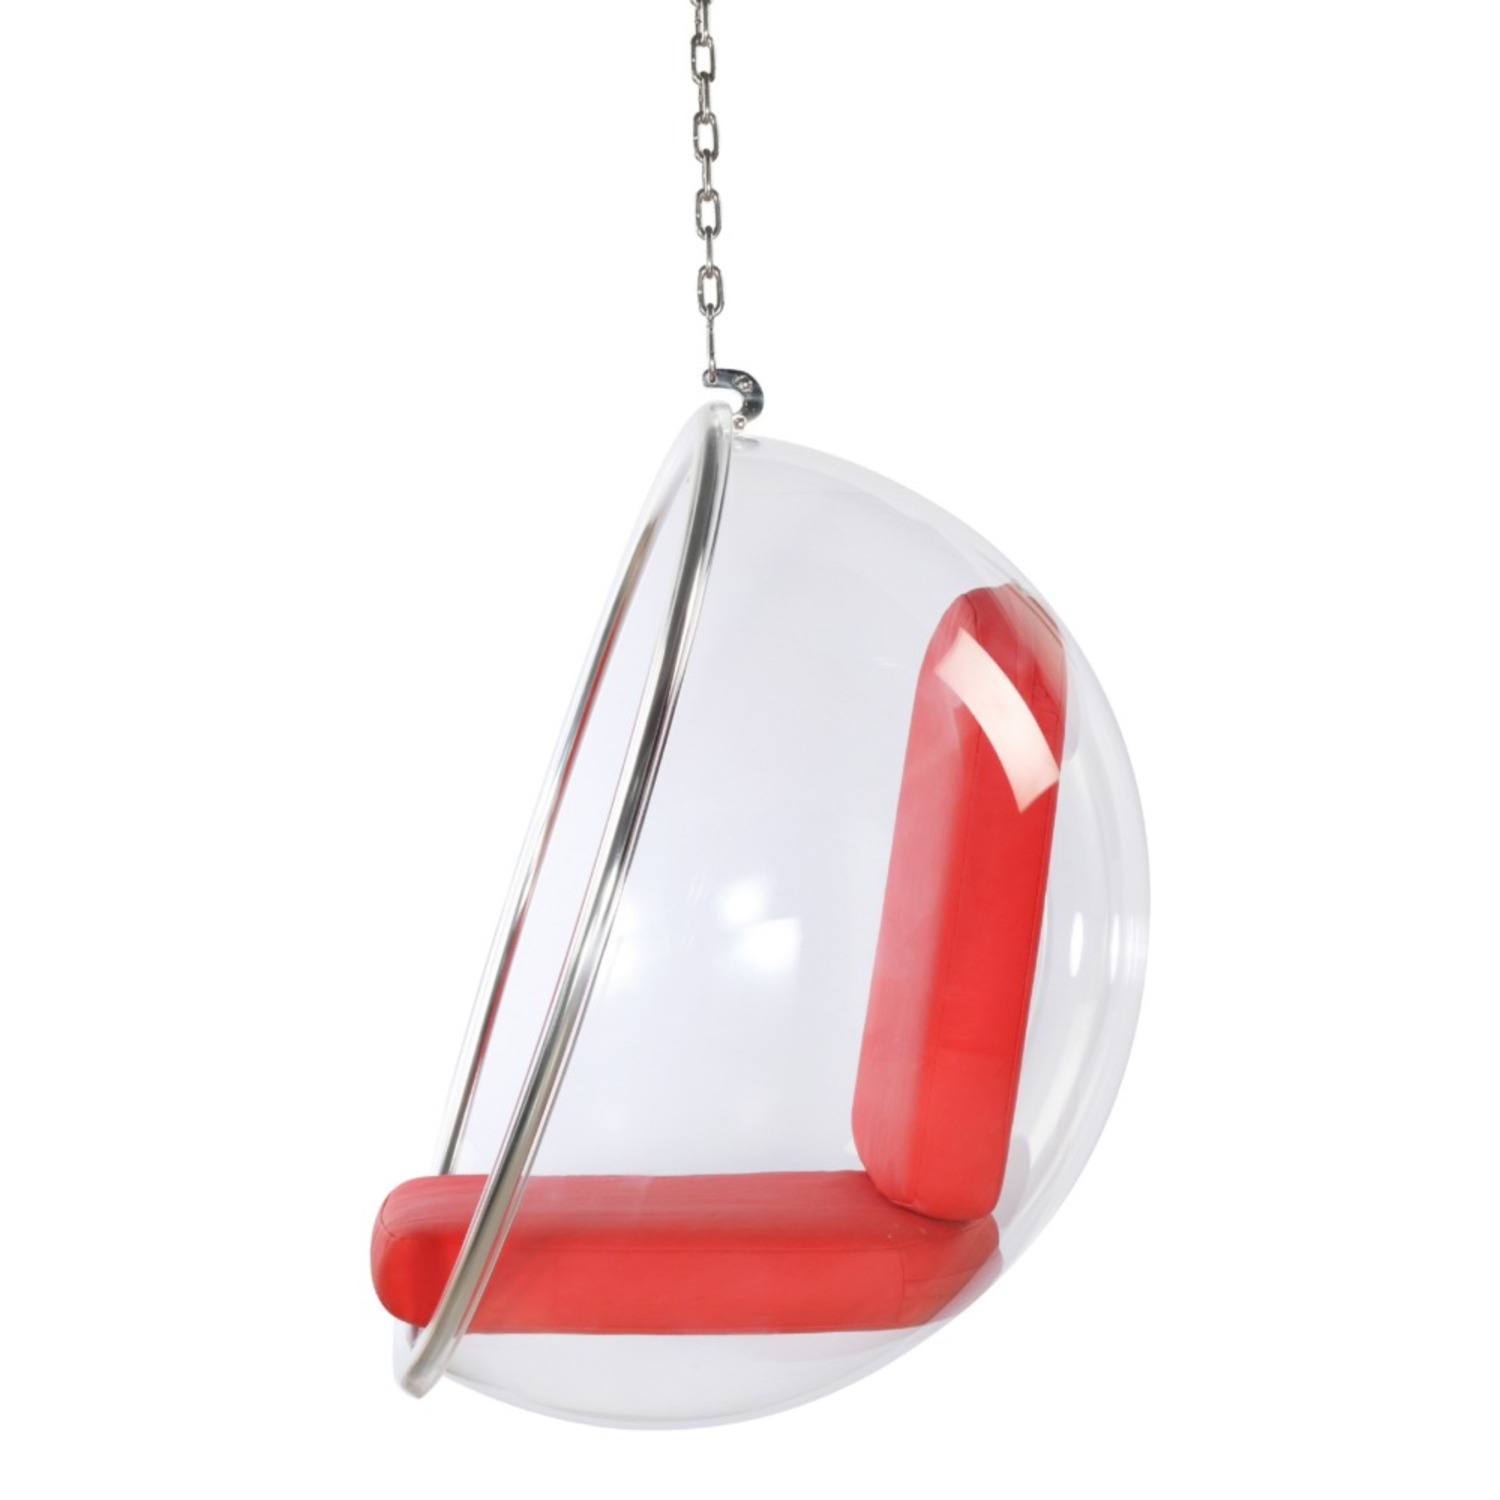 Hanging Chair In Clear Acrylic & Red PU Leather - image-3